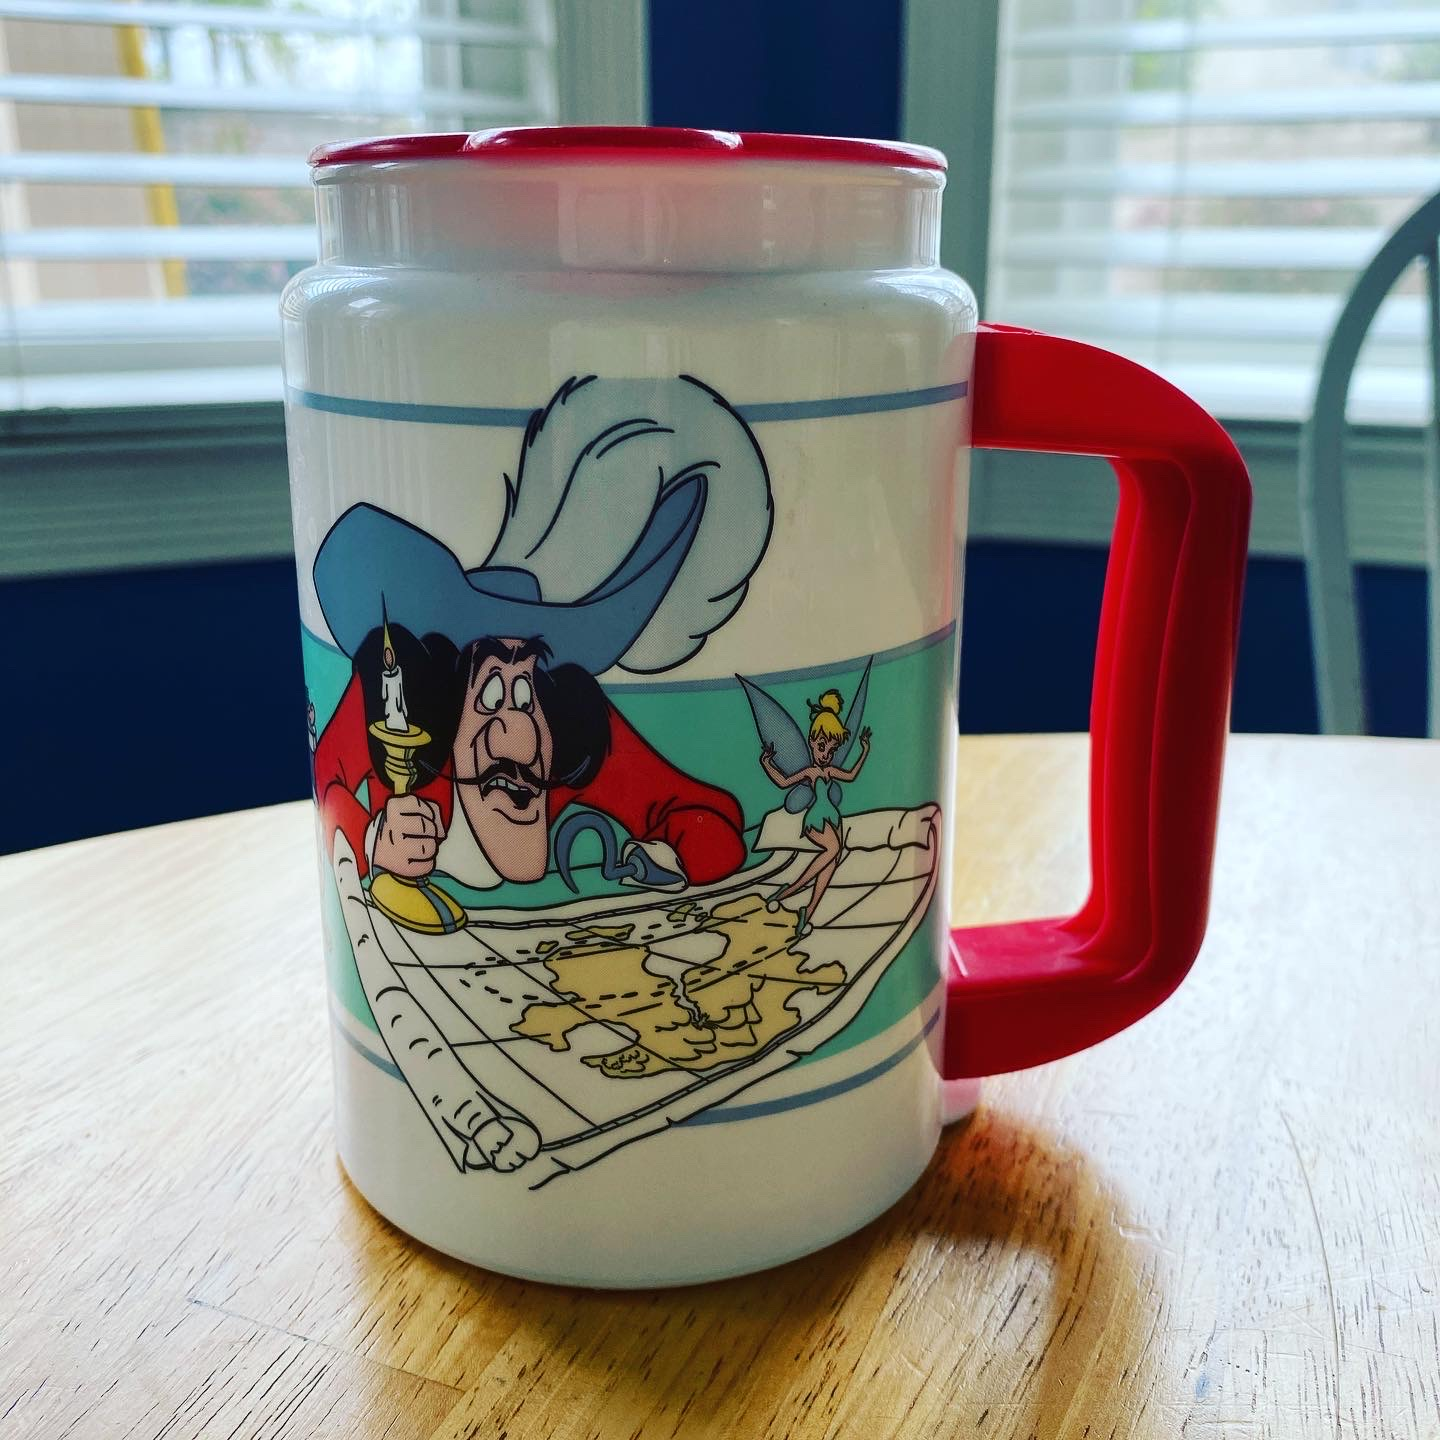 Captain Hook DisneyWorld coffee mug denise m. colby #disneymugs post